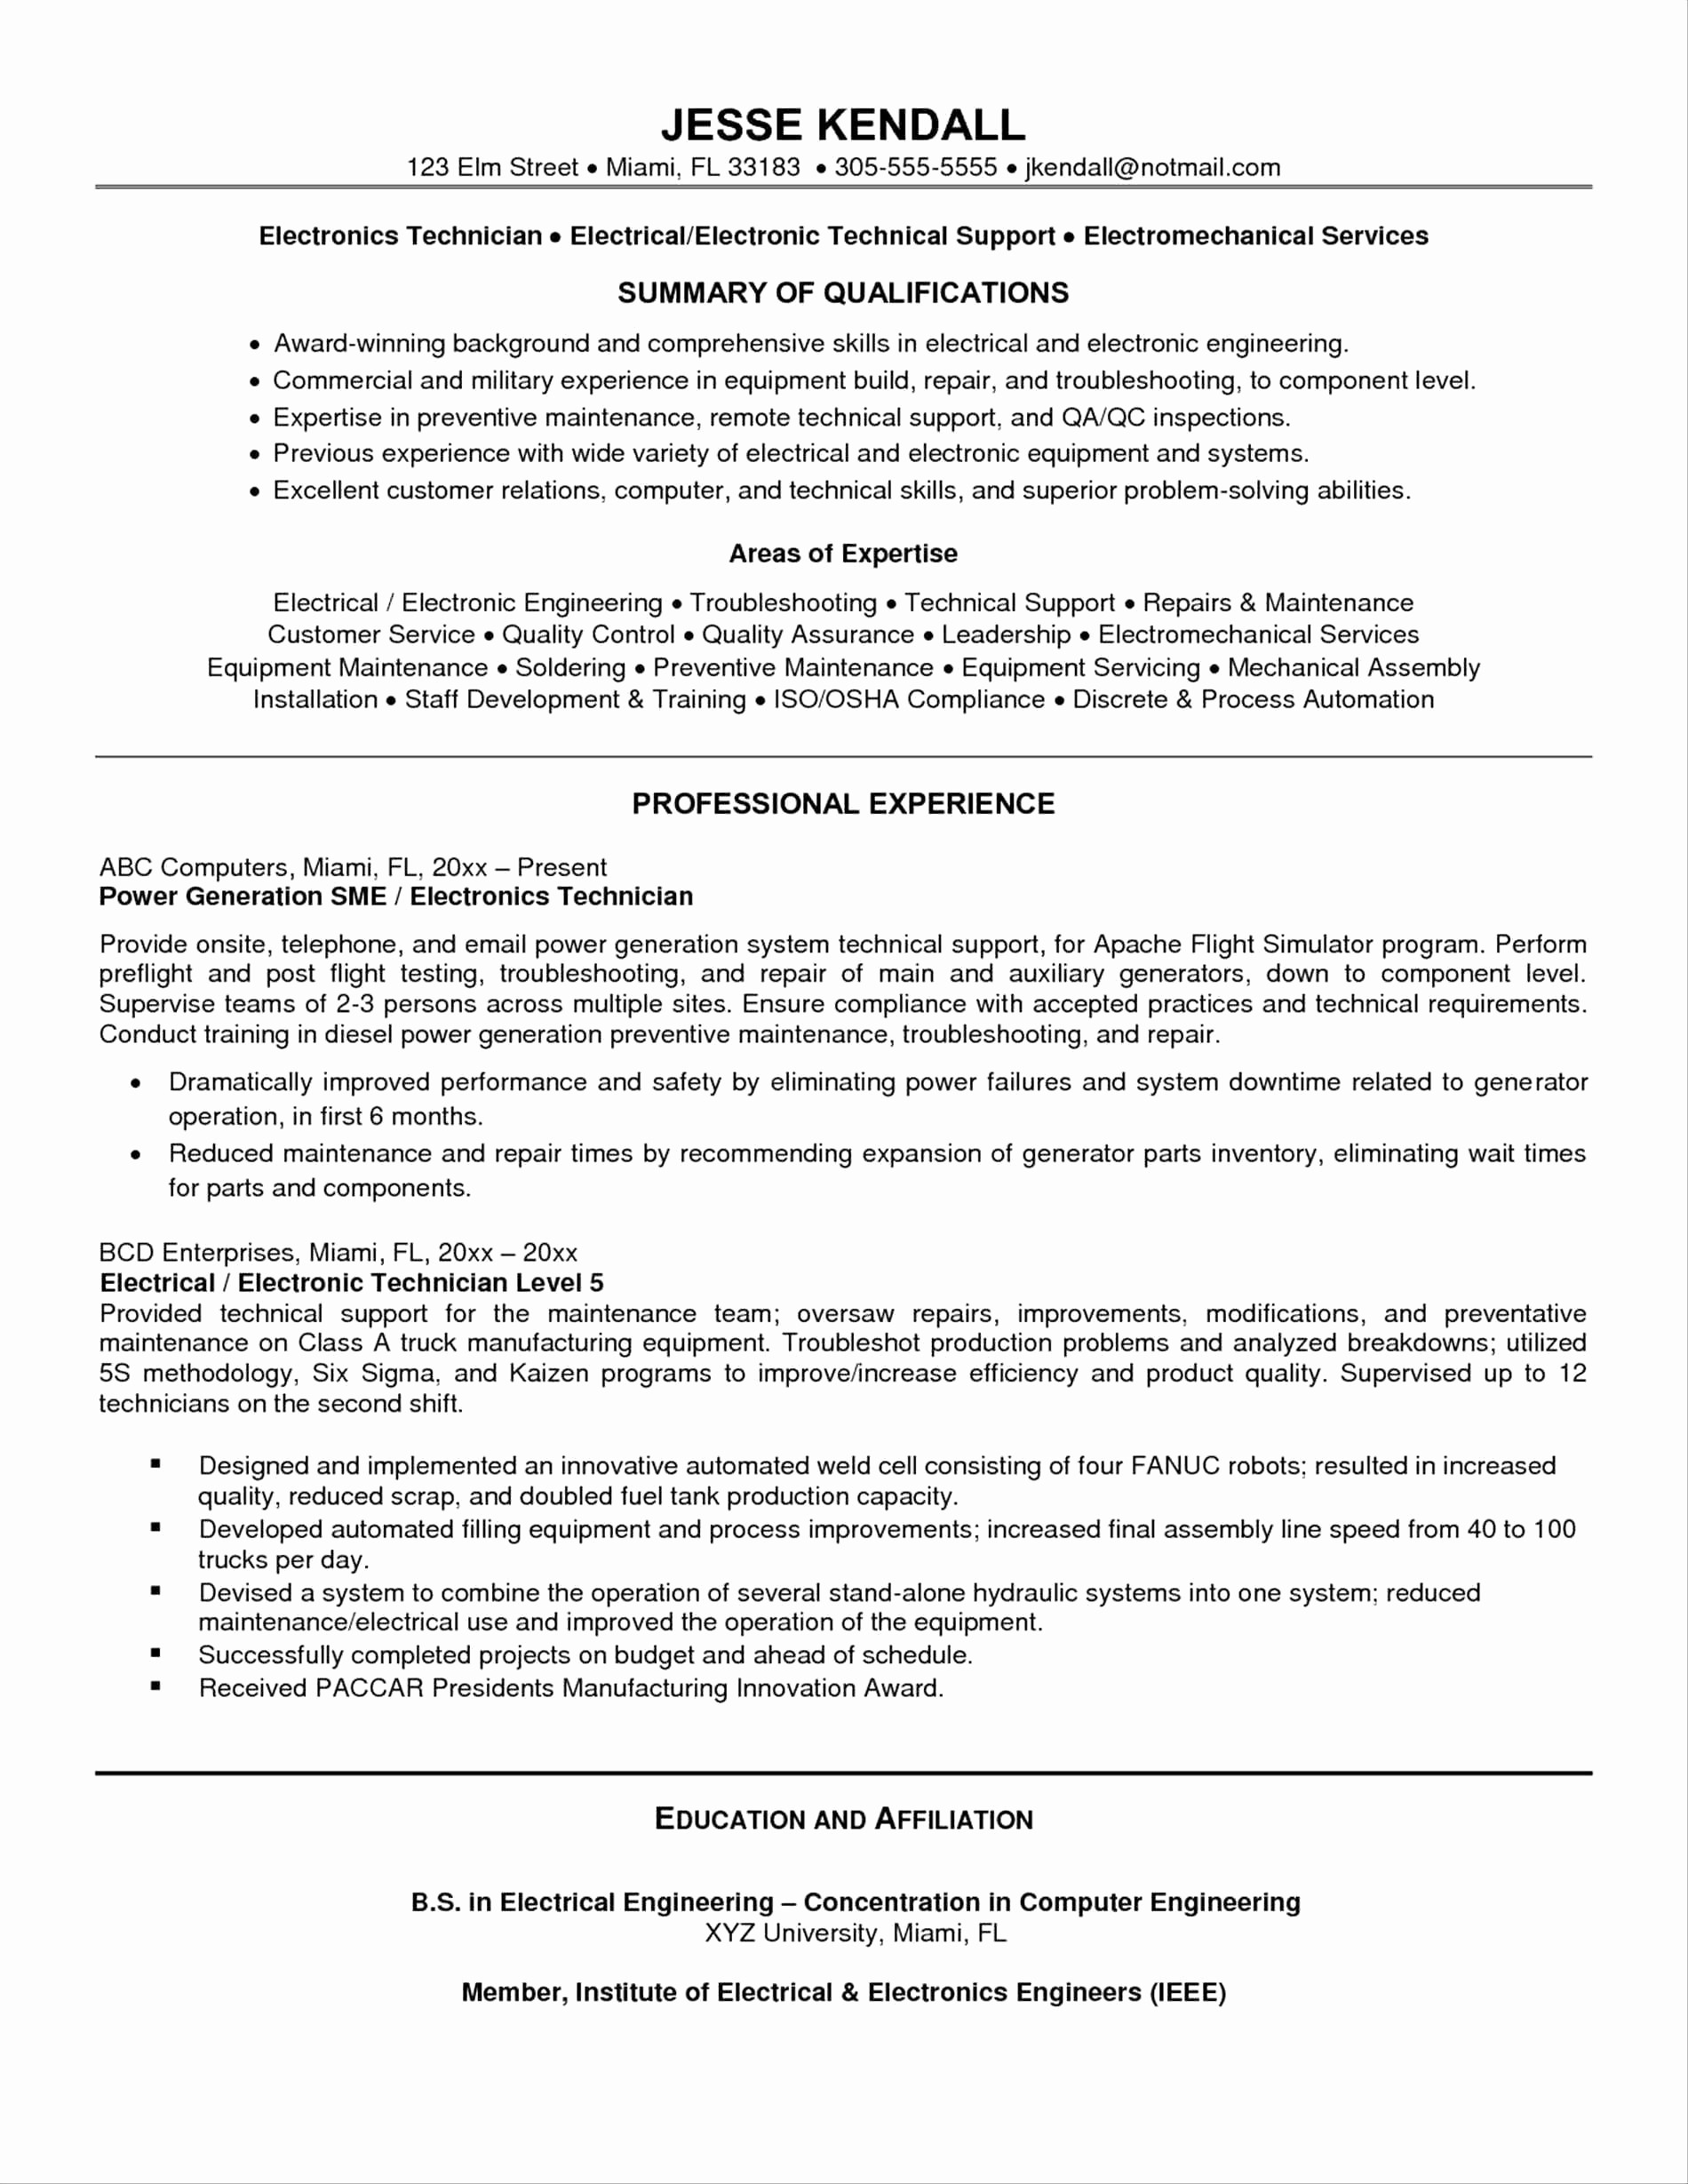 Electronics Technician Resume Template - Pharmacy Technician Resume Skills Awesome Skills Summary for Resume